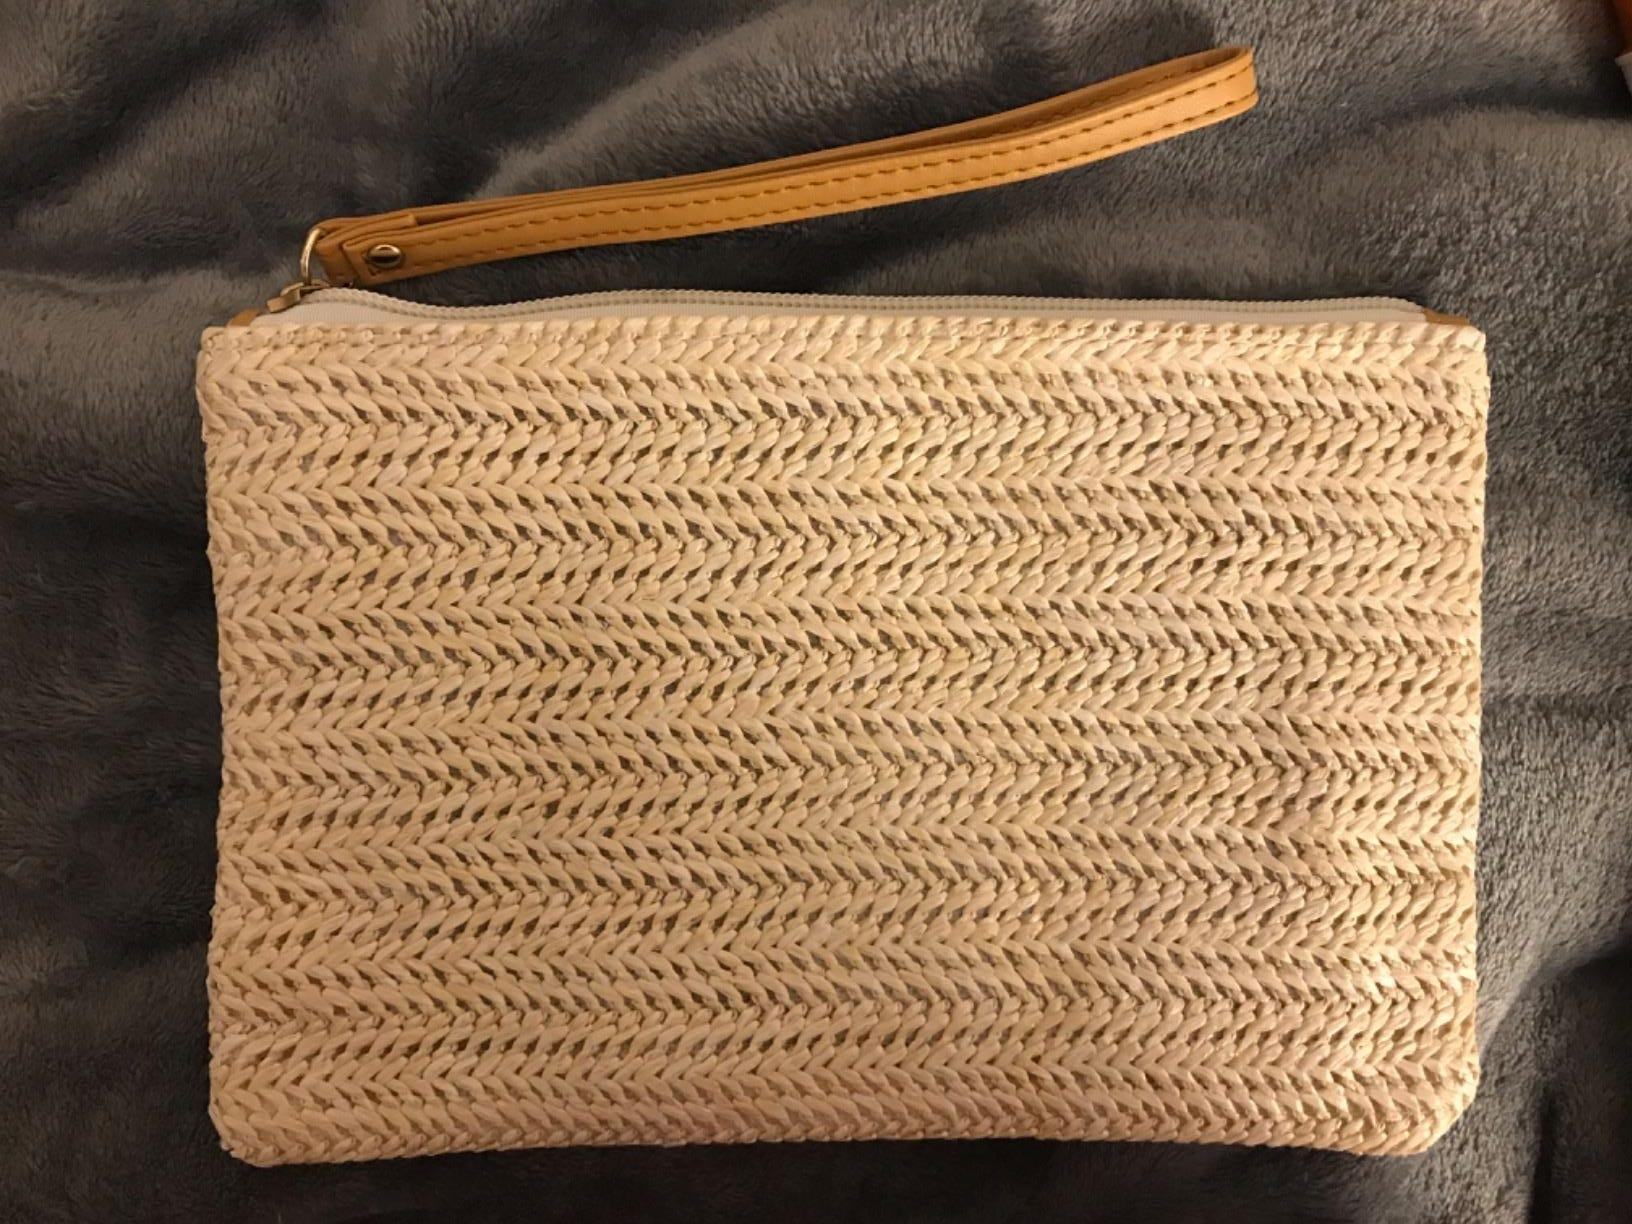 Where basket straw clutch bag better